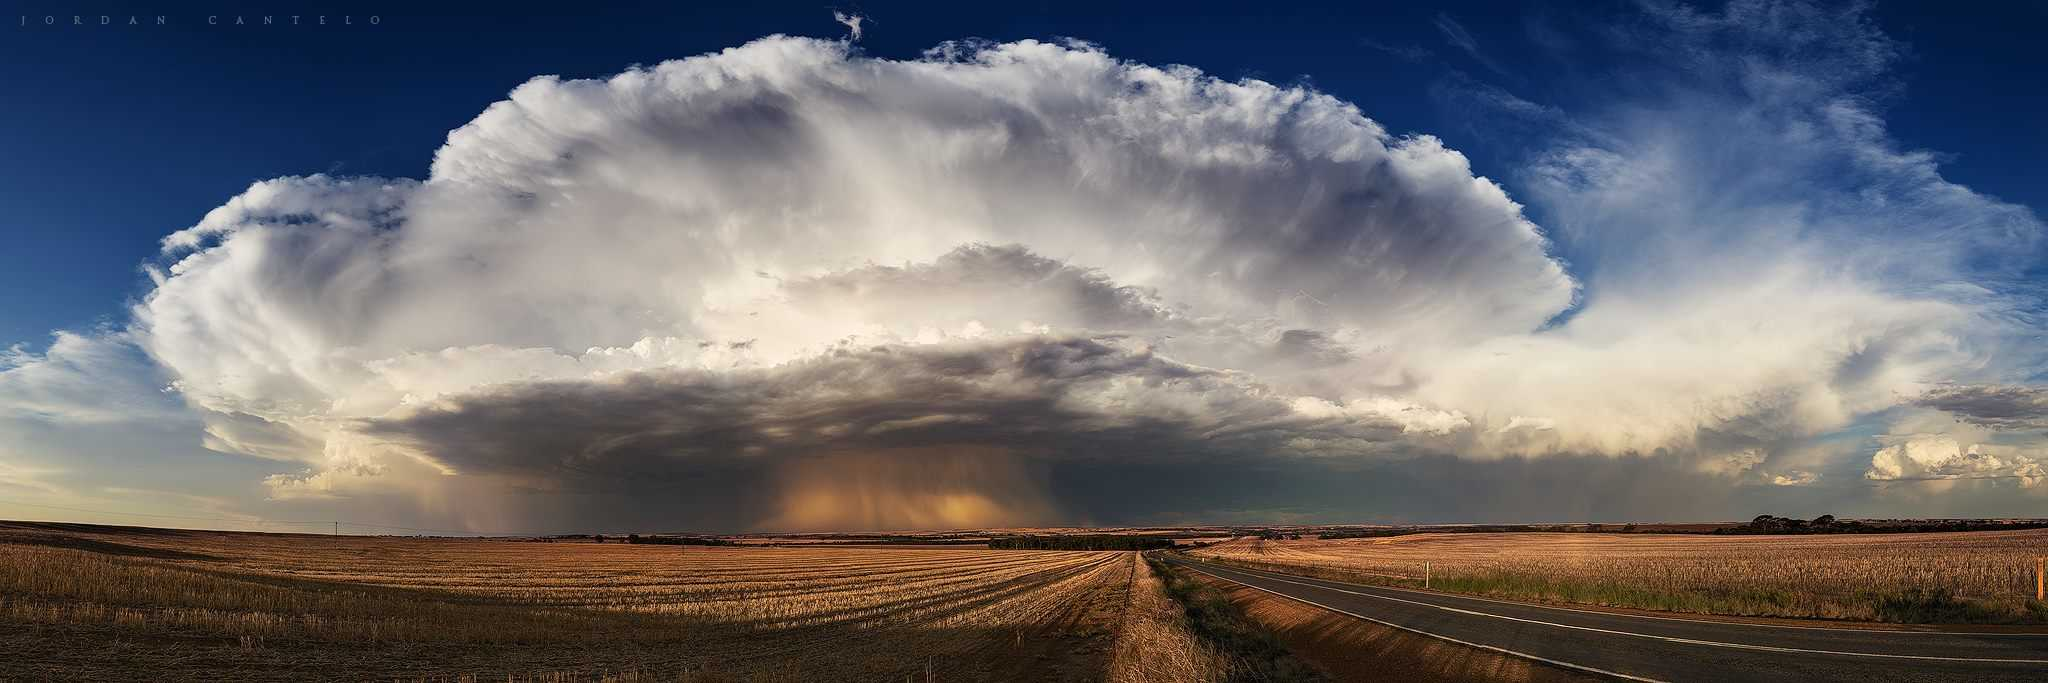 Pretty epic conditions forming up in front of me when I was approaching a maturing thunderstorm out east of Perth, Western Australia.